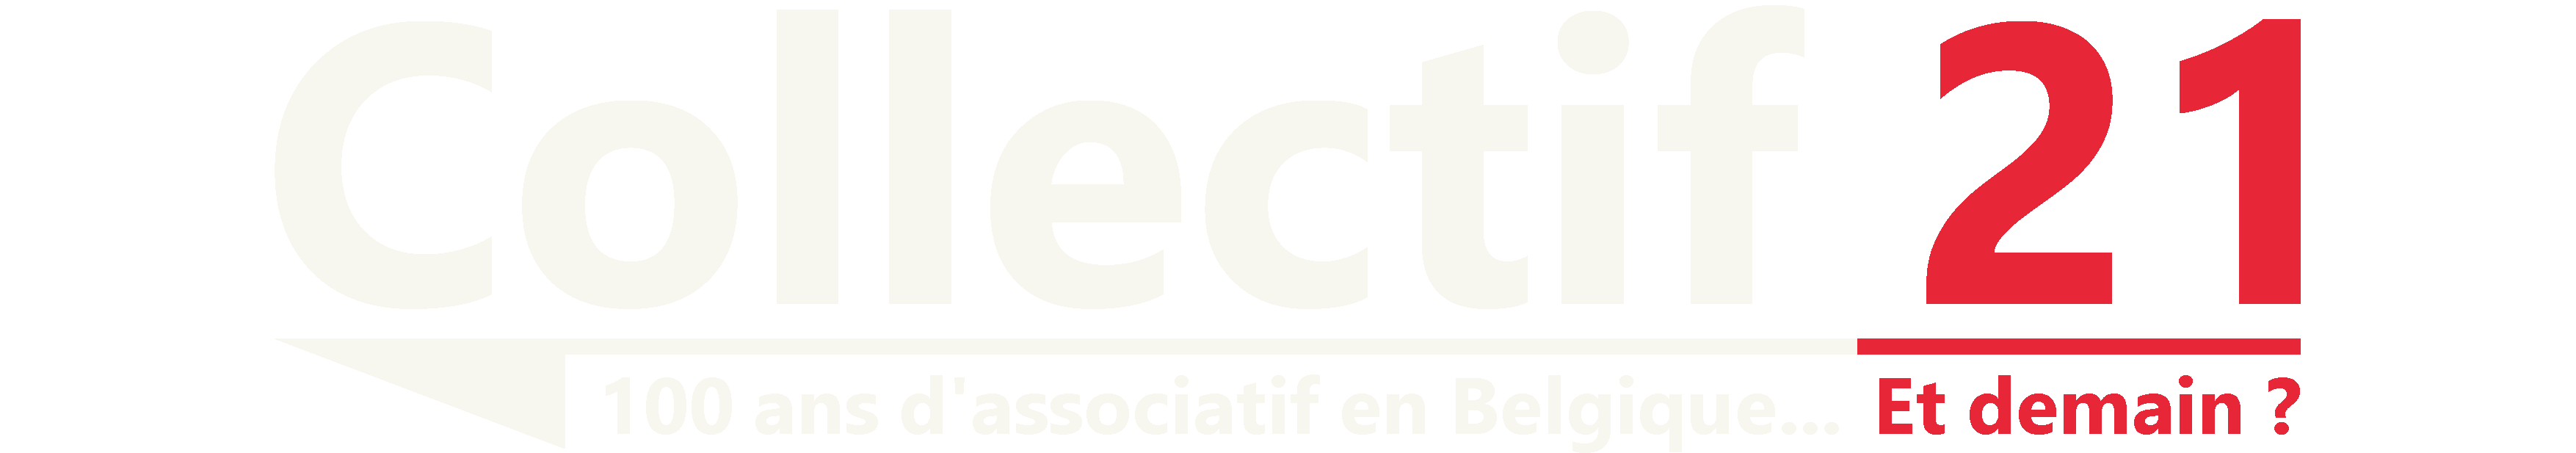 Collectif21